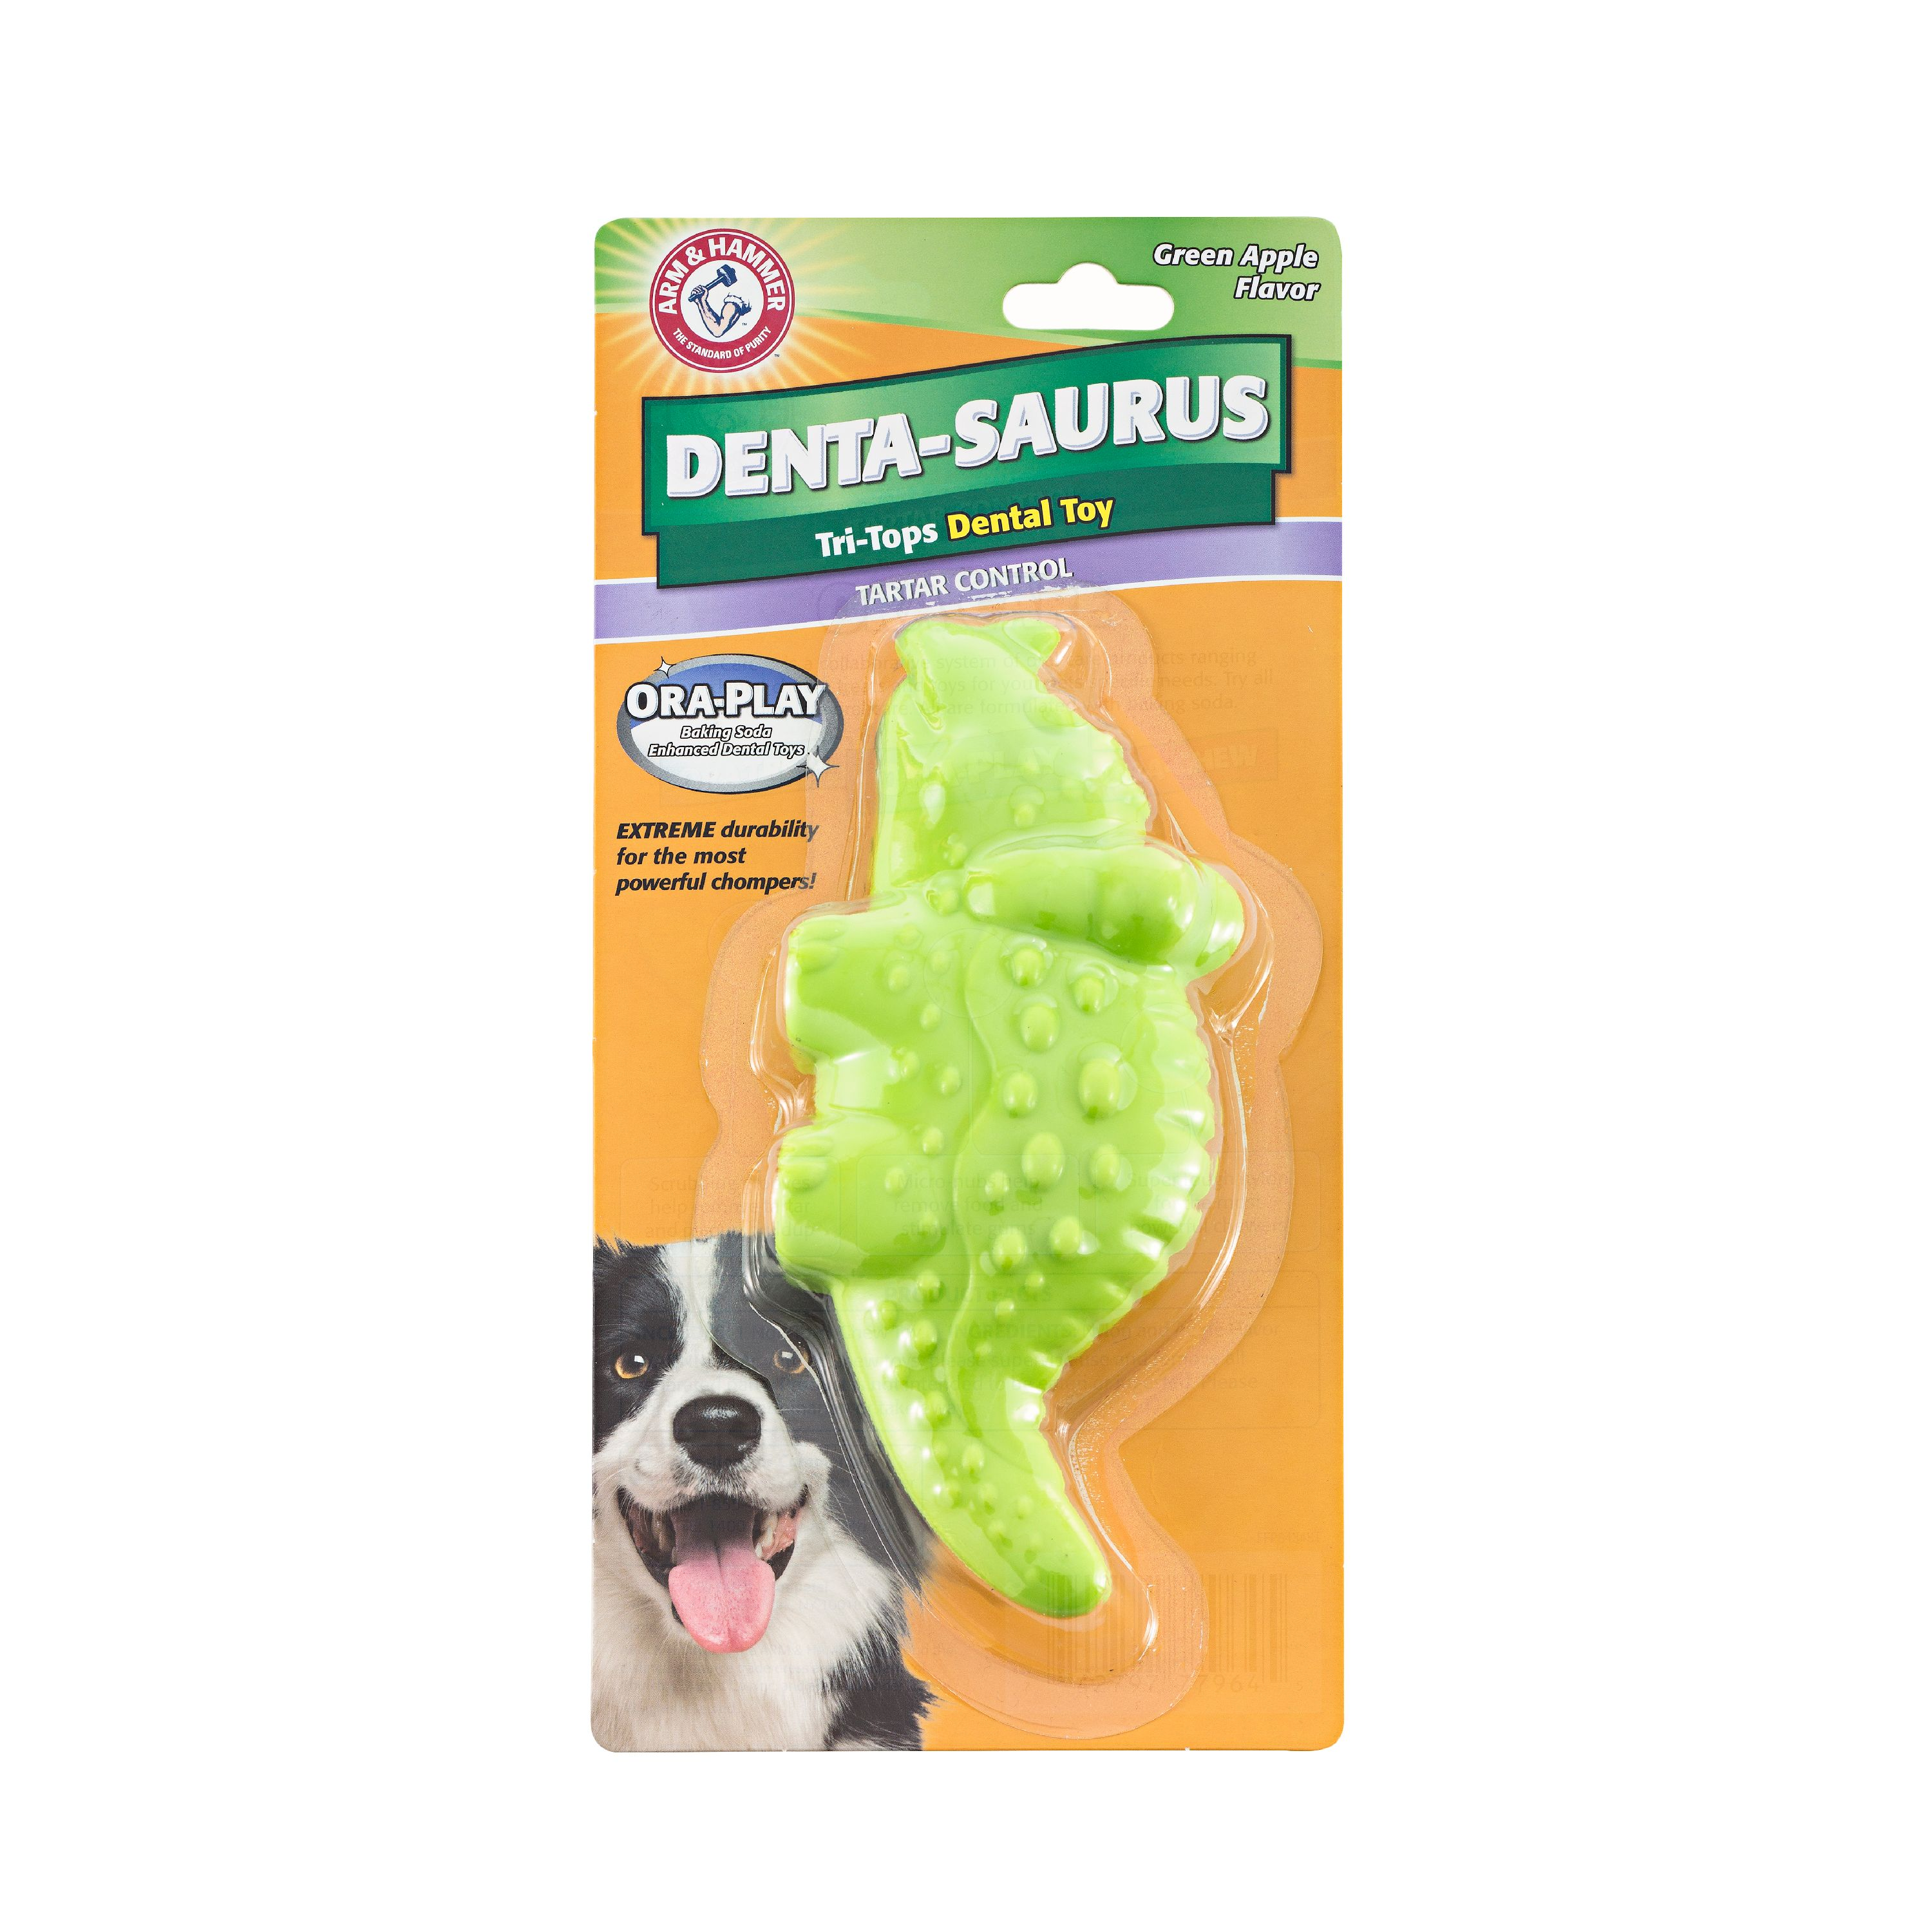 Arm & Hammer™ Ora-Play Denta-Saurus Tri-Tops Dental Toy in Green Apple Flavor